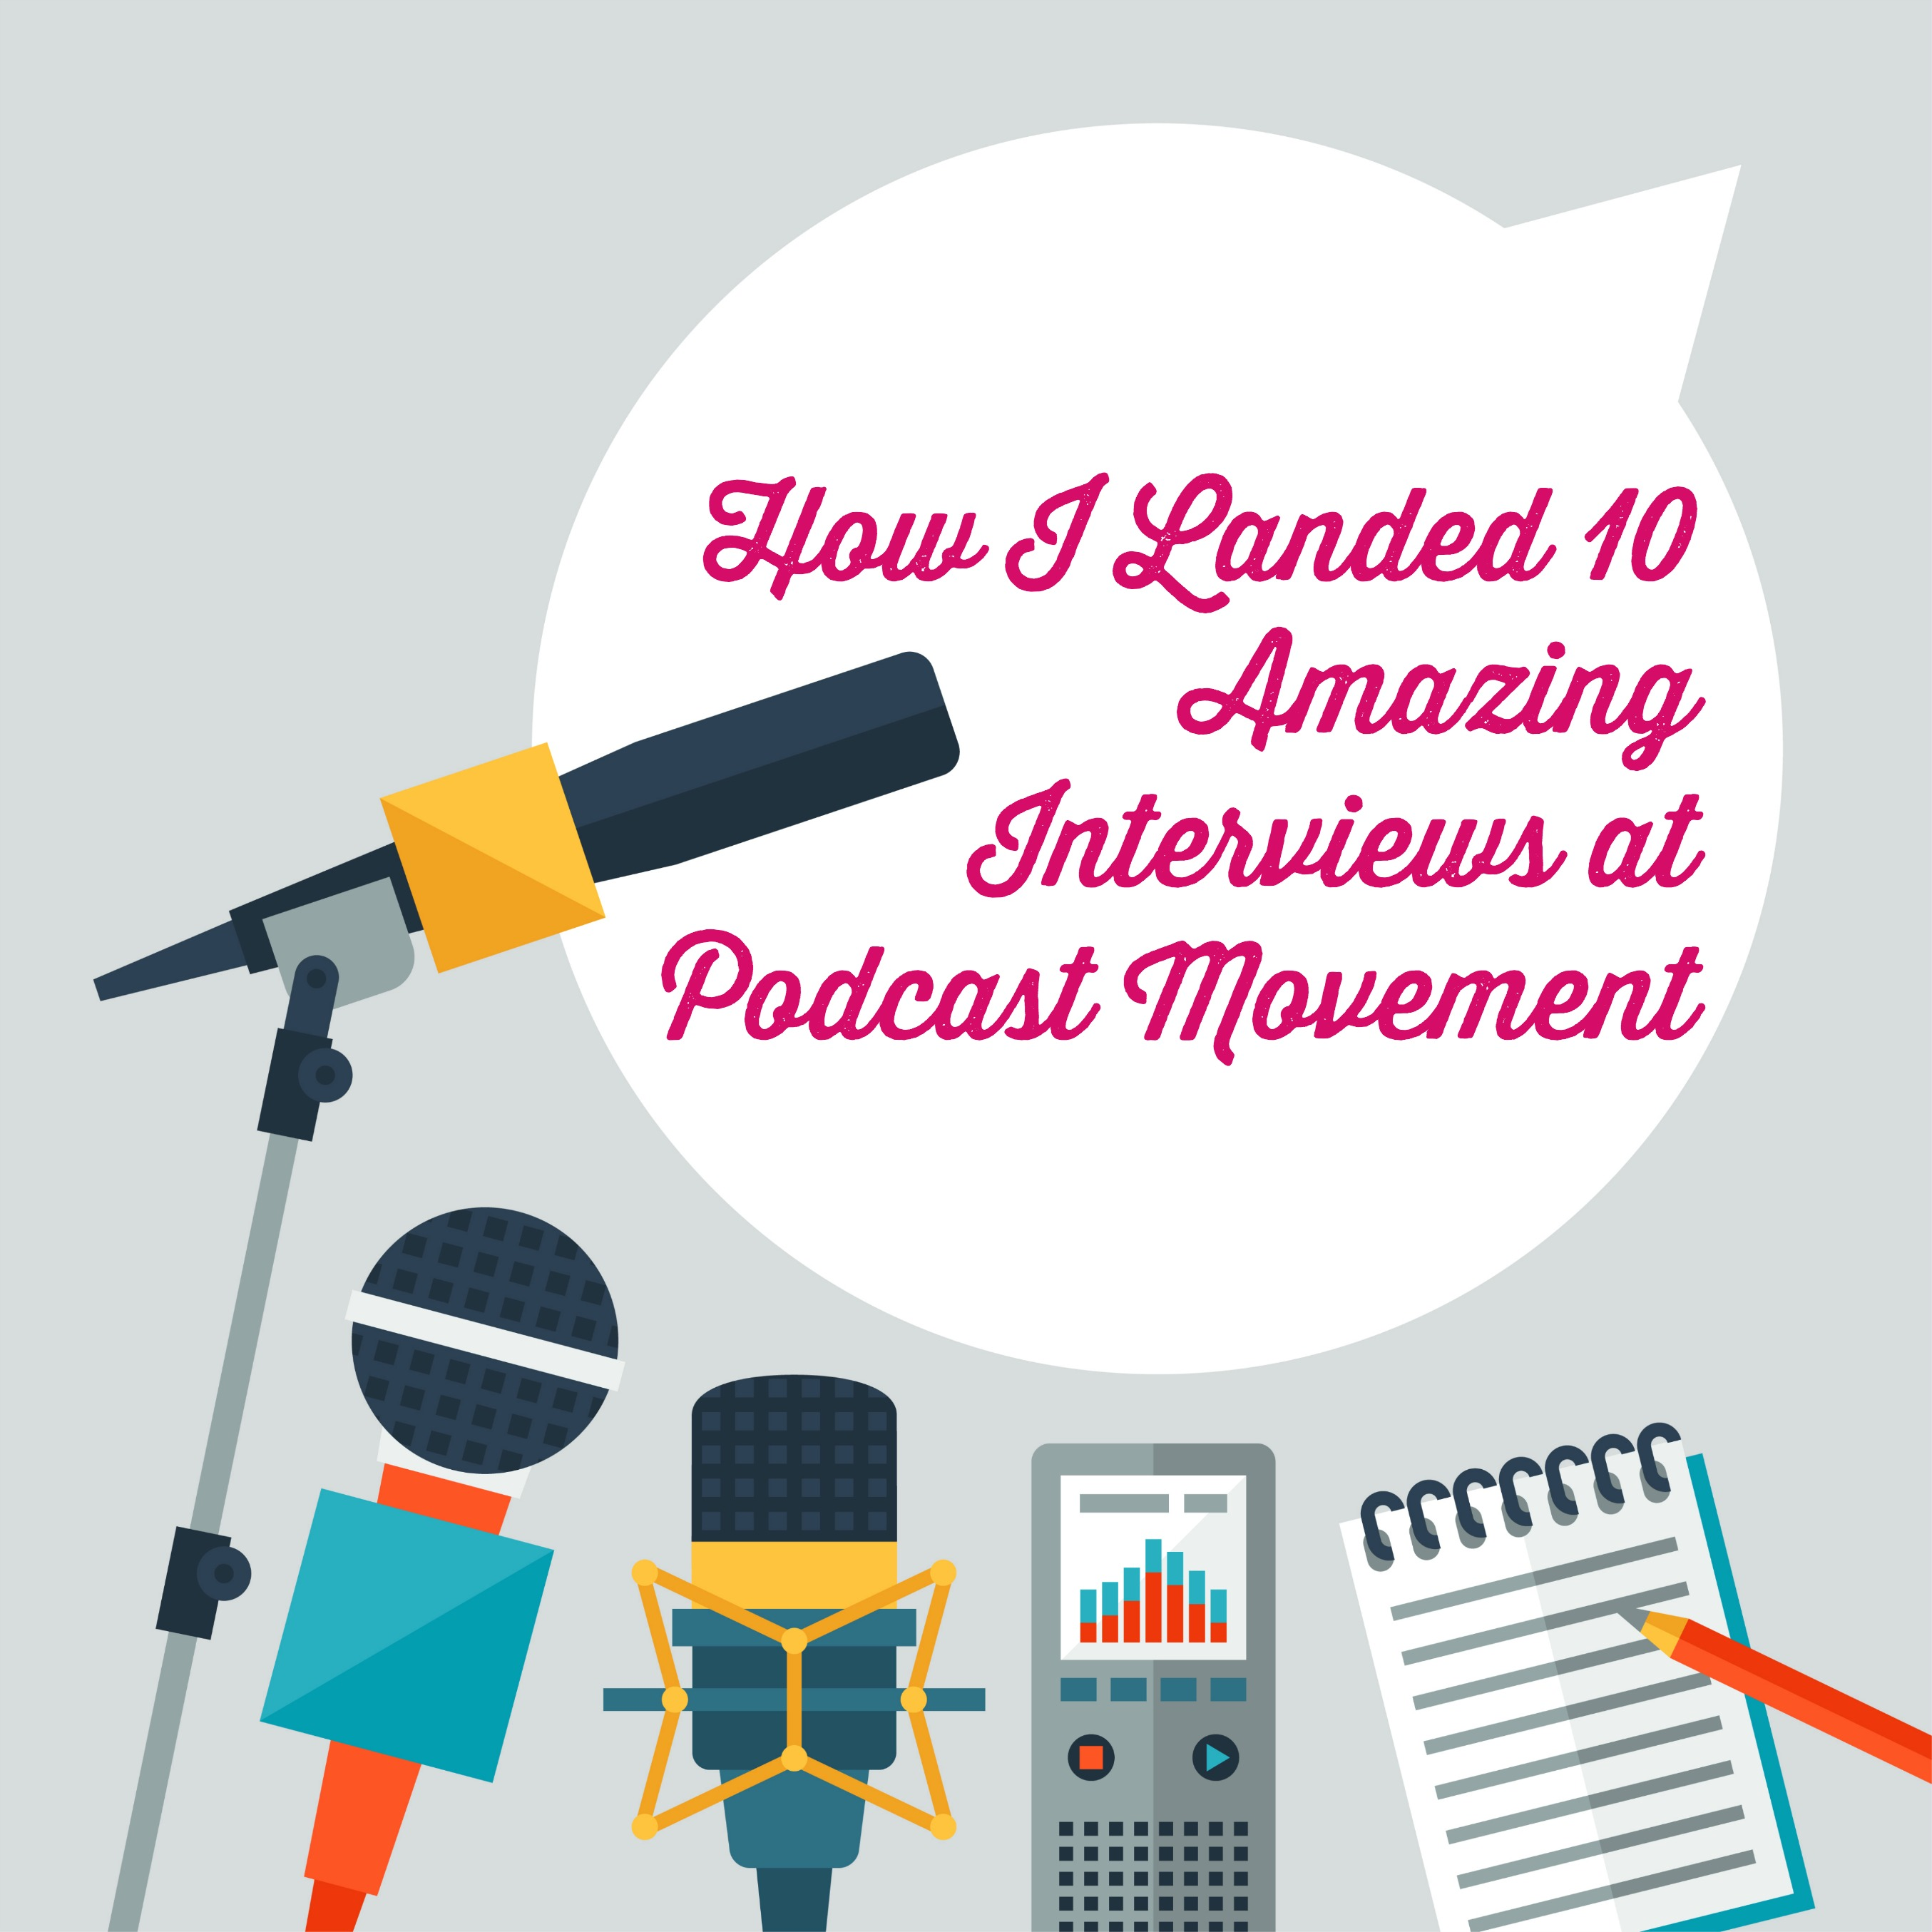 How I Landed 10 Amazing Interviews at Podcast Movement (including Marc Maron!)